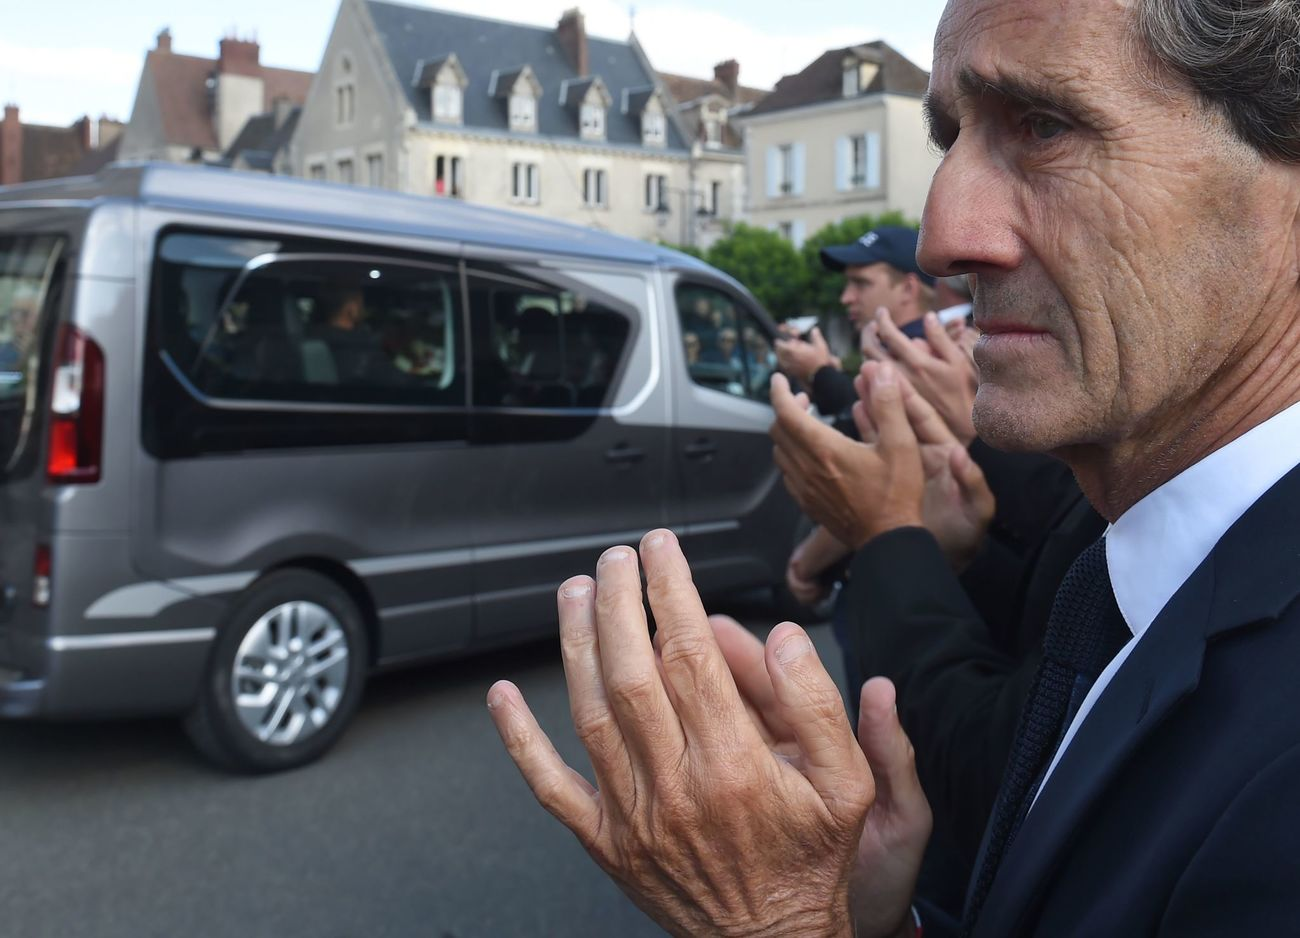 Retired French F1 racing driver and Renault special advisor Alain Prost applause at the funeral procession of the late BWT Arden's French driver Anthoine Hubert outside the Cathedral of Notre Dame, in Chartres, on September 10, 2019, in Chartres, center France. - The 22-year-old F2 driver was killed on August 31, 2019 in a crash on the Spa-Francorchamps circuit. (Photo by JEAN-FRANCOIS MONIER / AFP)